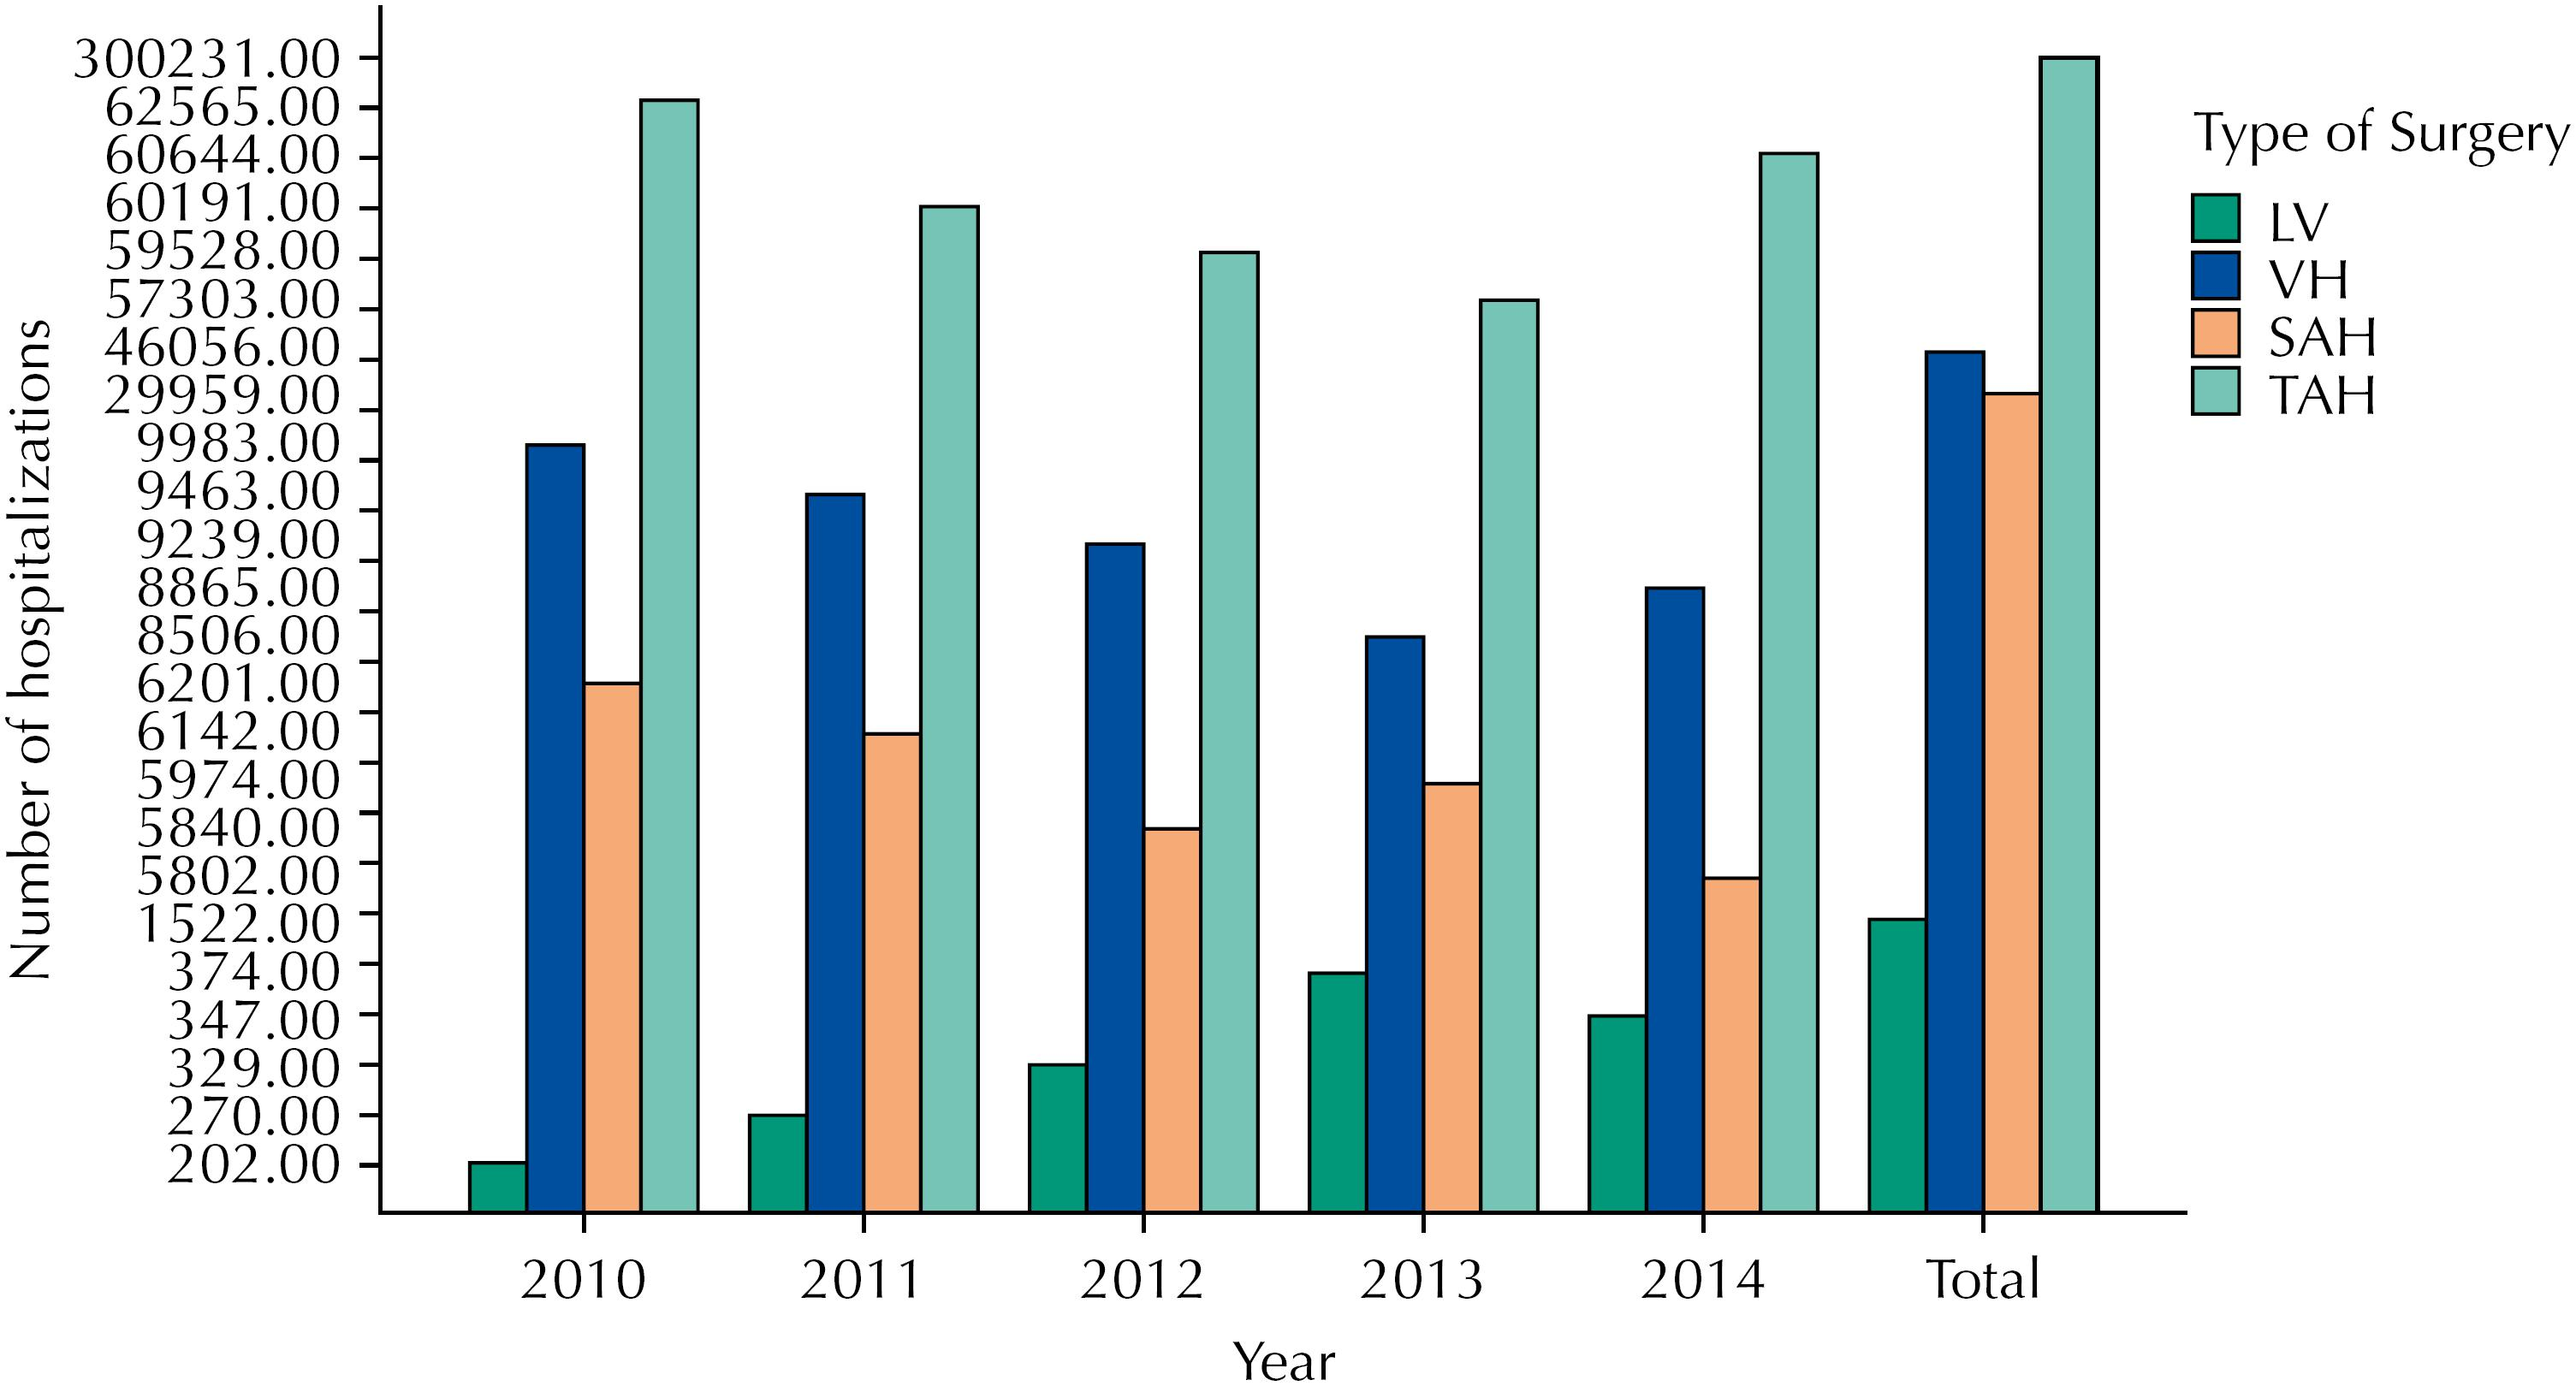 Yearly number of hospital admissions related to each type of hysterectomy.